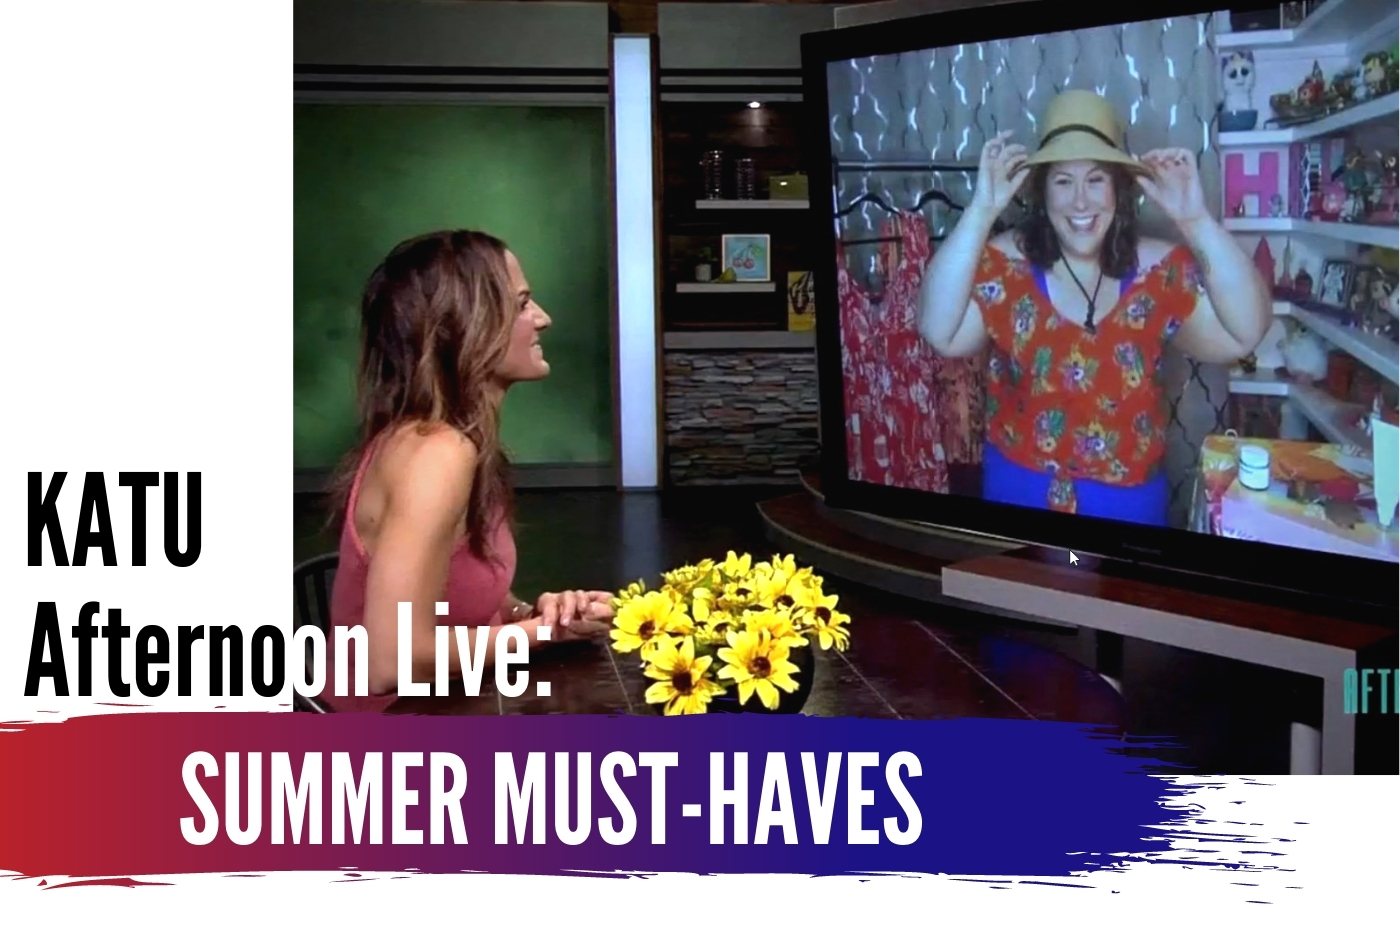 KATU Afternoon Live: Summer Must-Haves